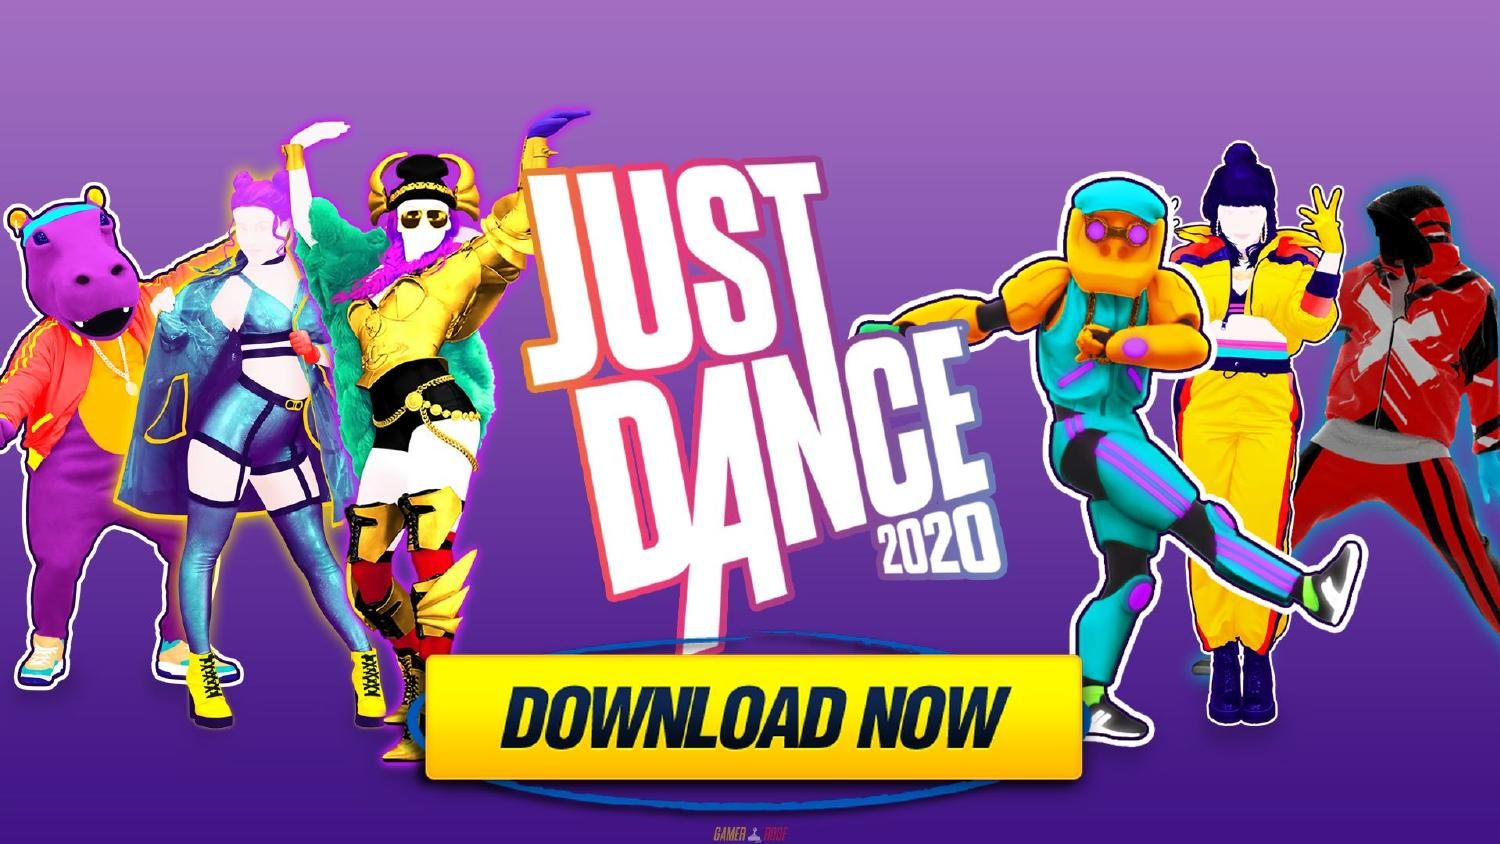 Just Dance 2020 PC Game Download Just dance, Dance games